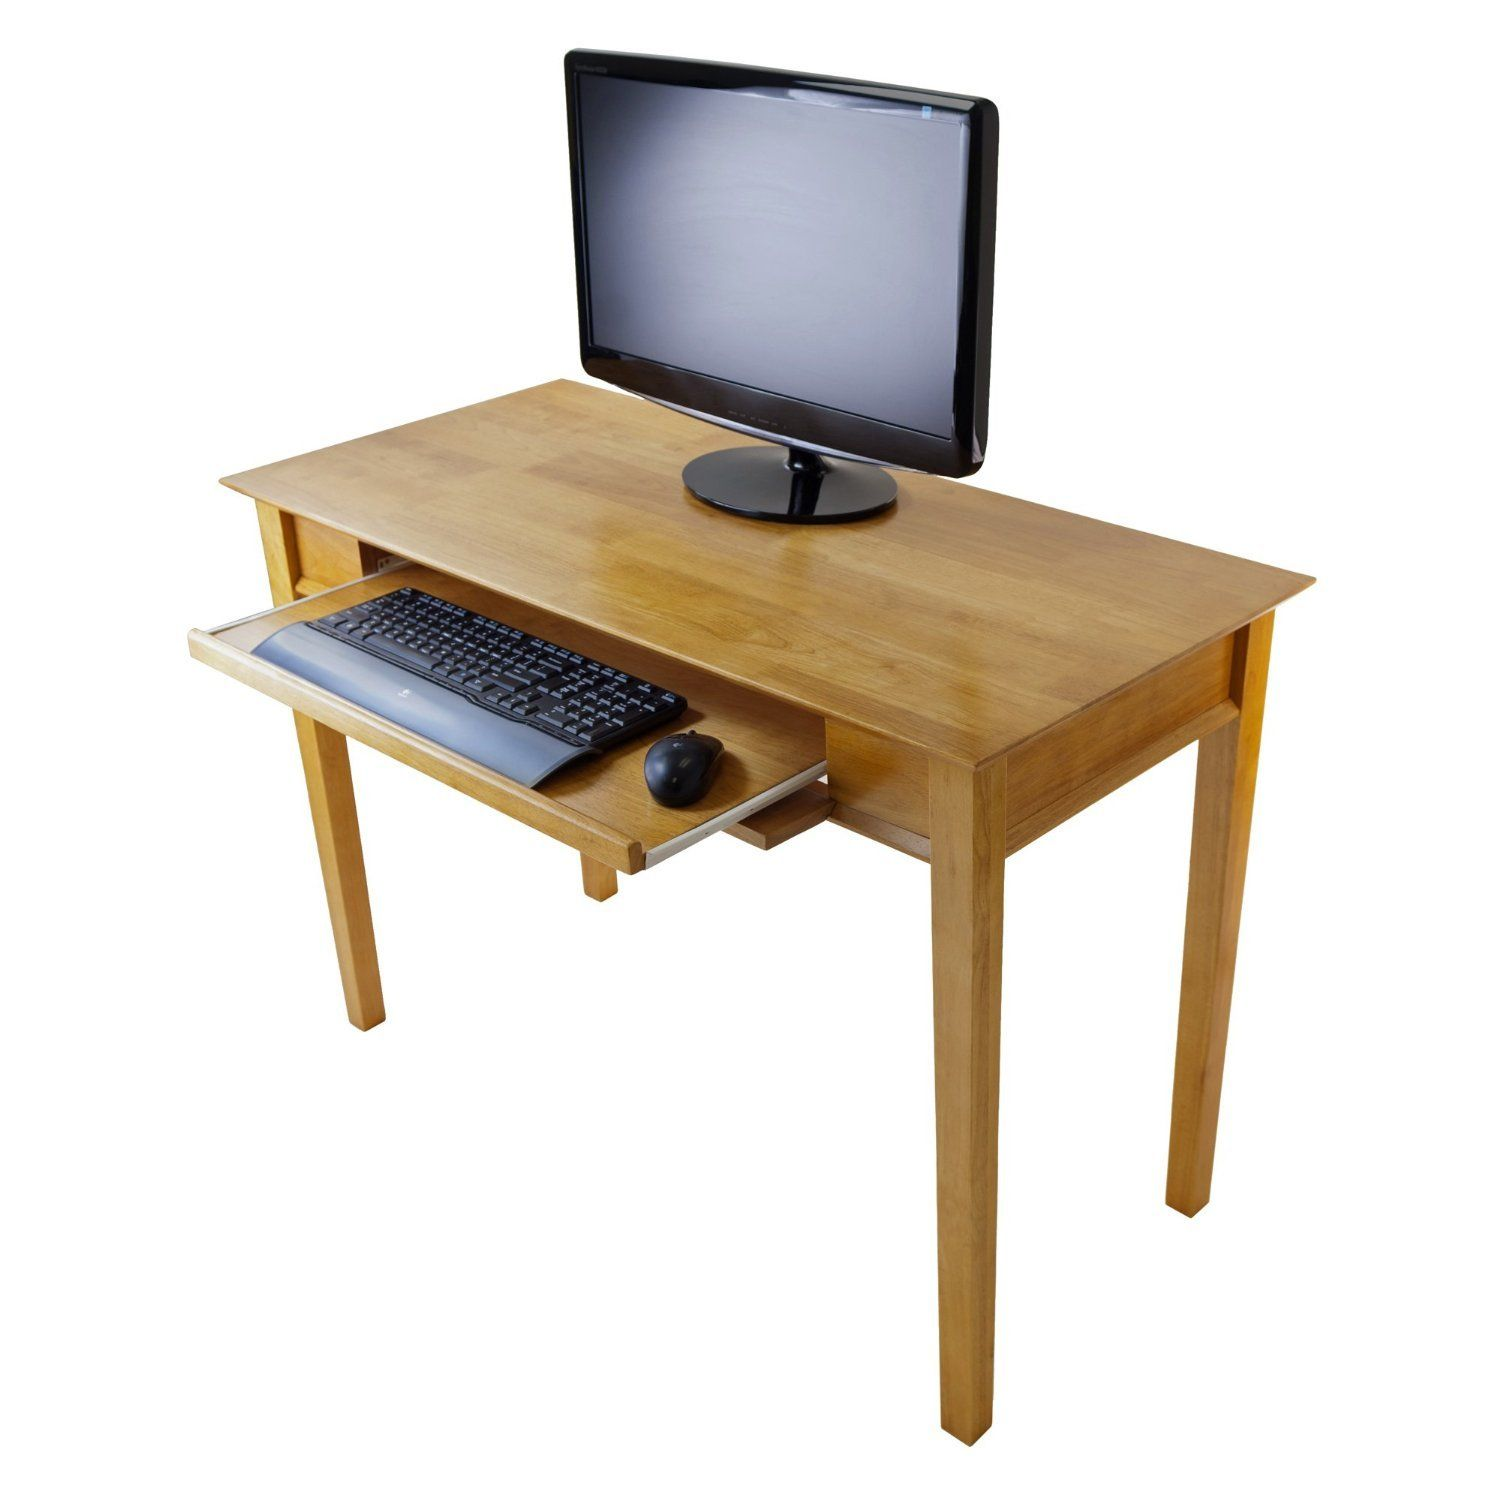 Brilliant 19 Small Office Office Den Office Ikea Home Brilliant